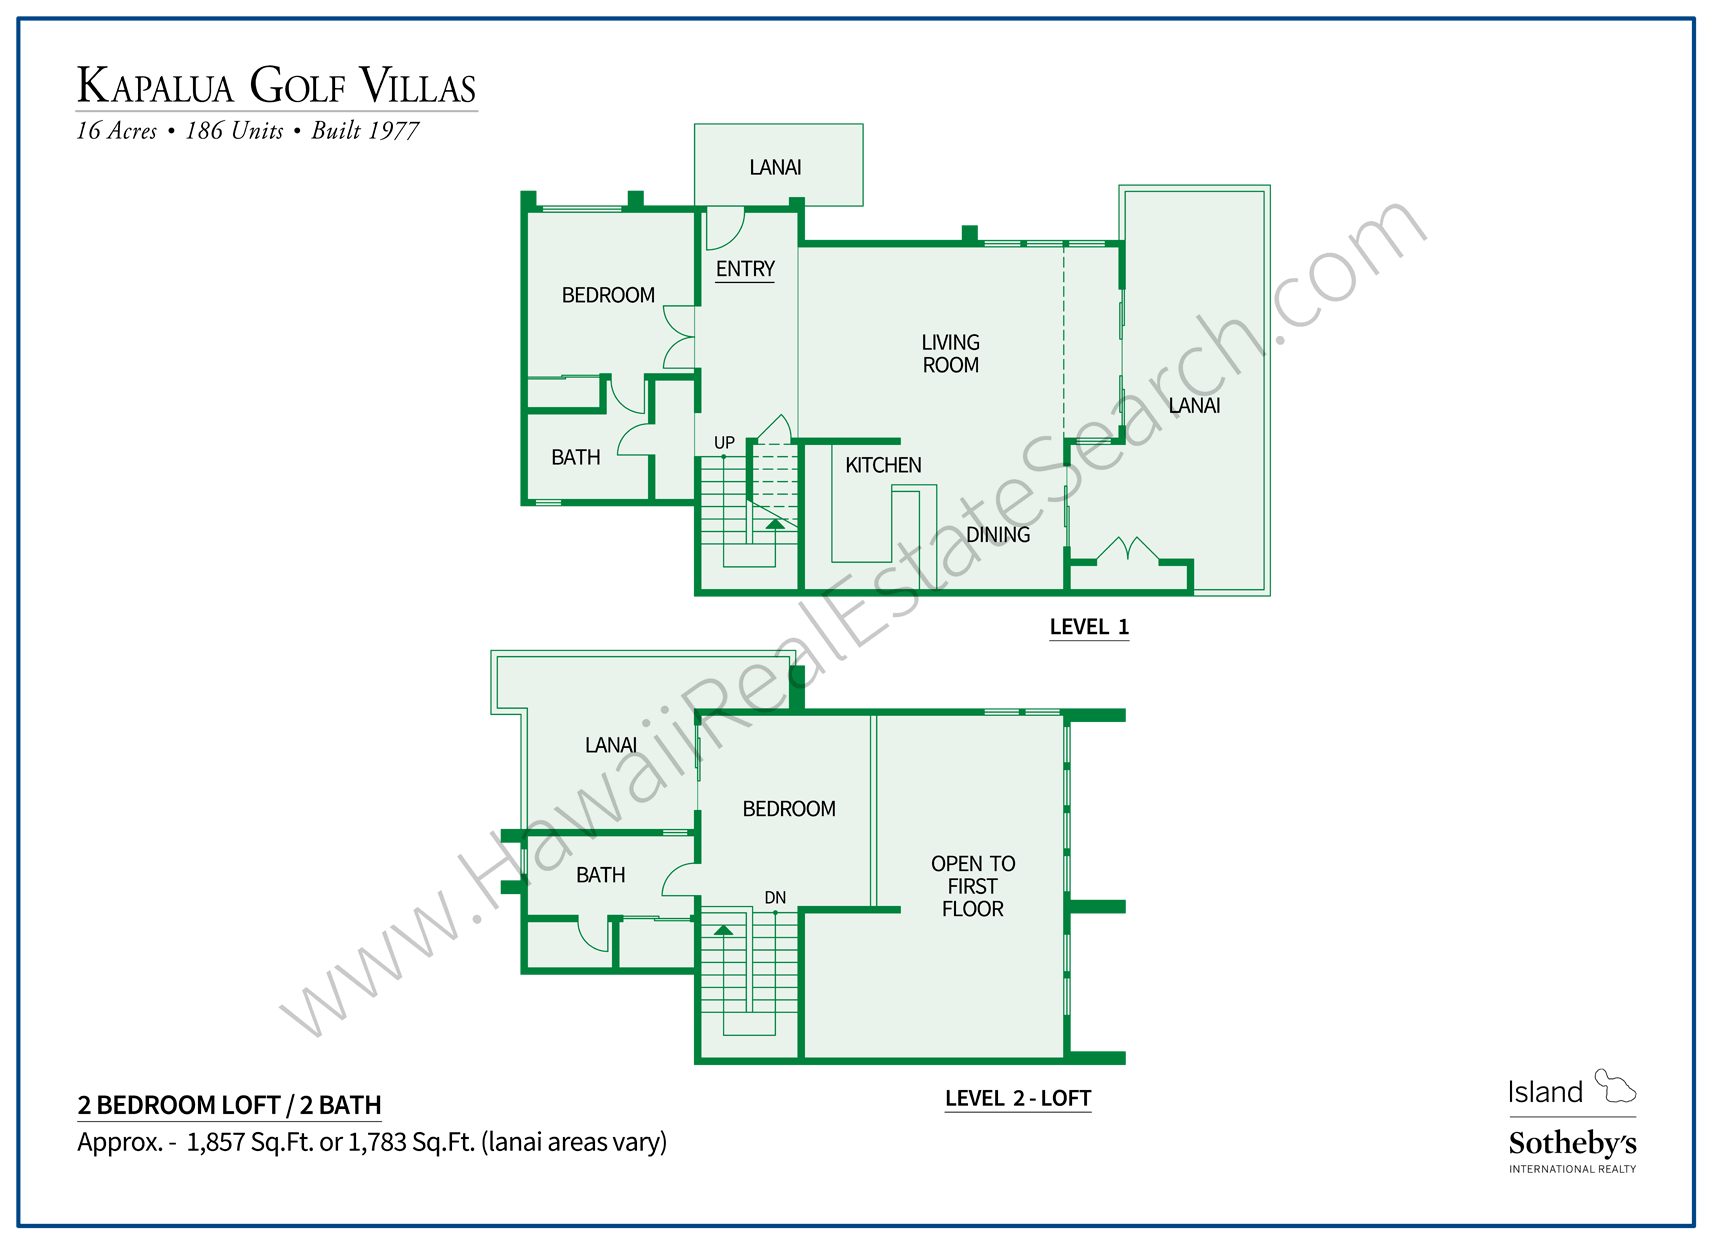 Kapalua Golf Villas Floor Plan 4